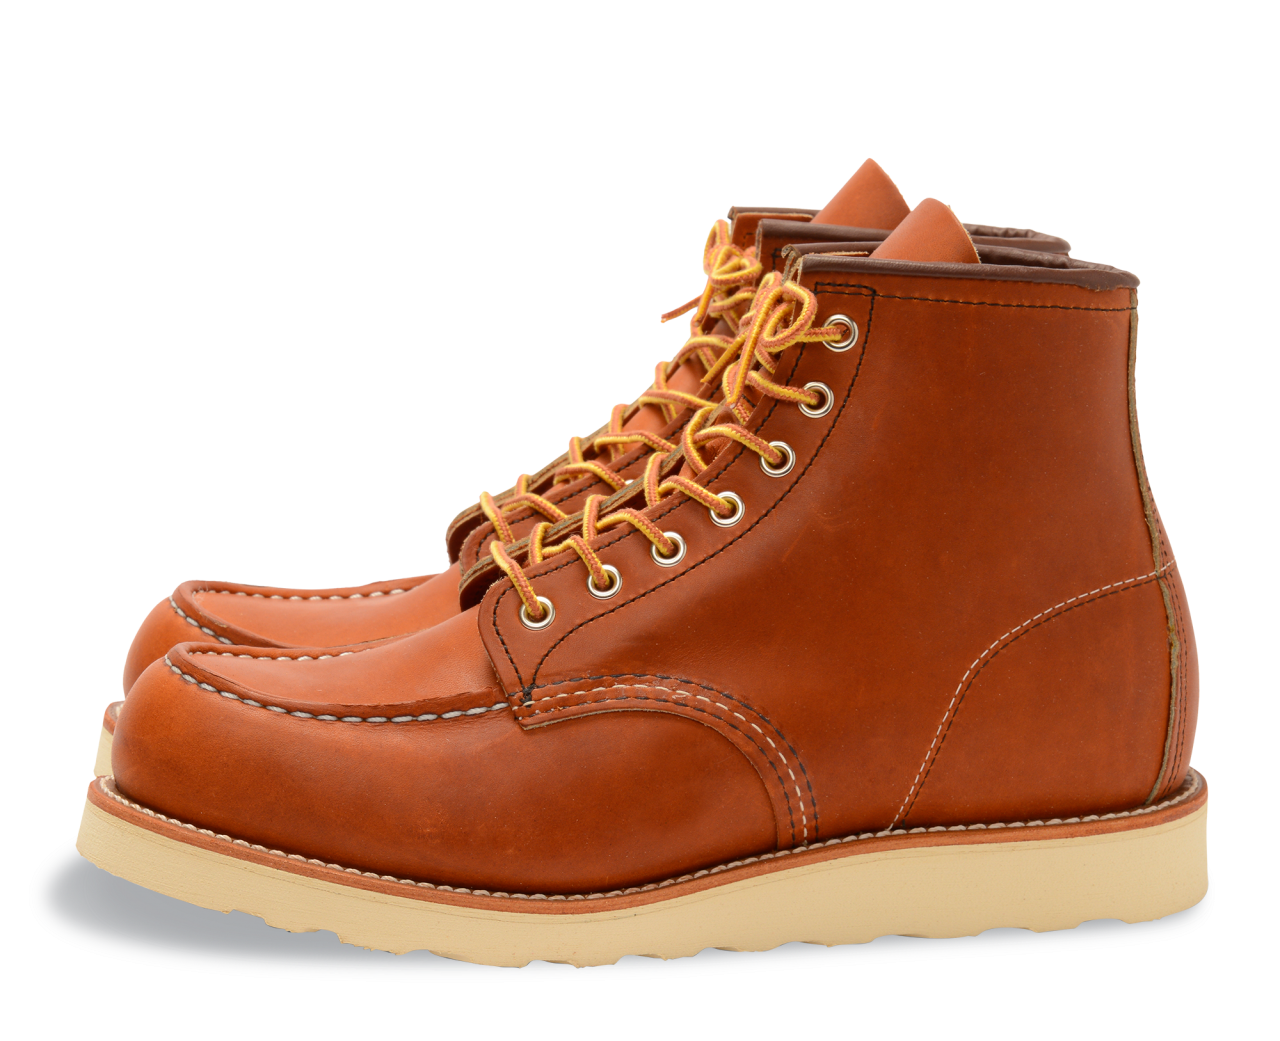 Red Wing 875 EE Moc Toe